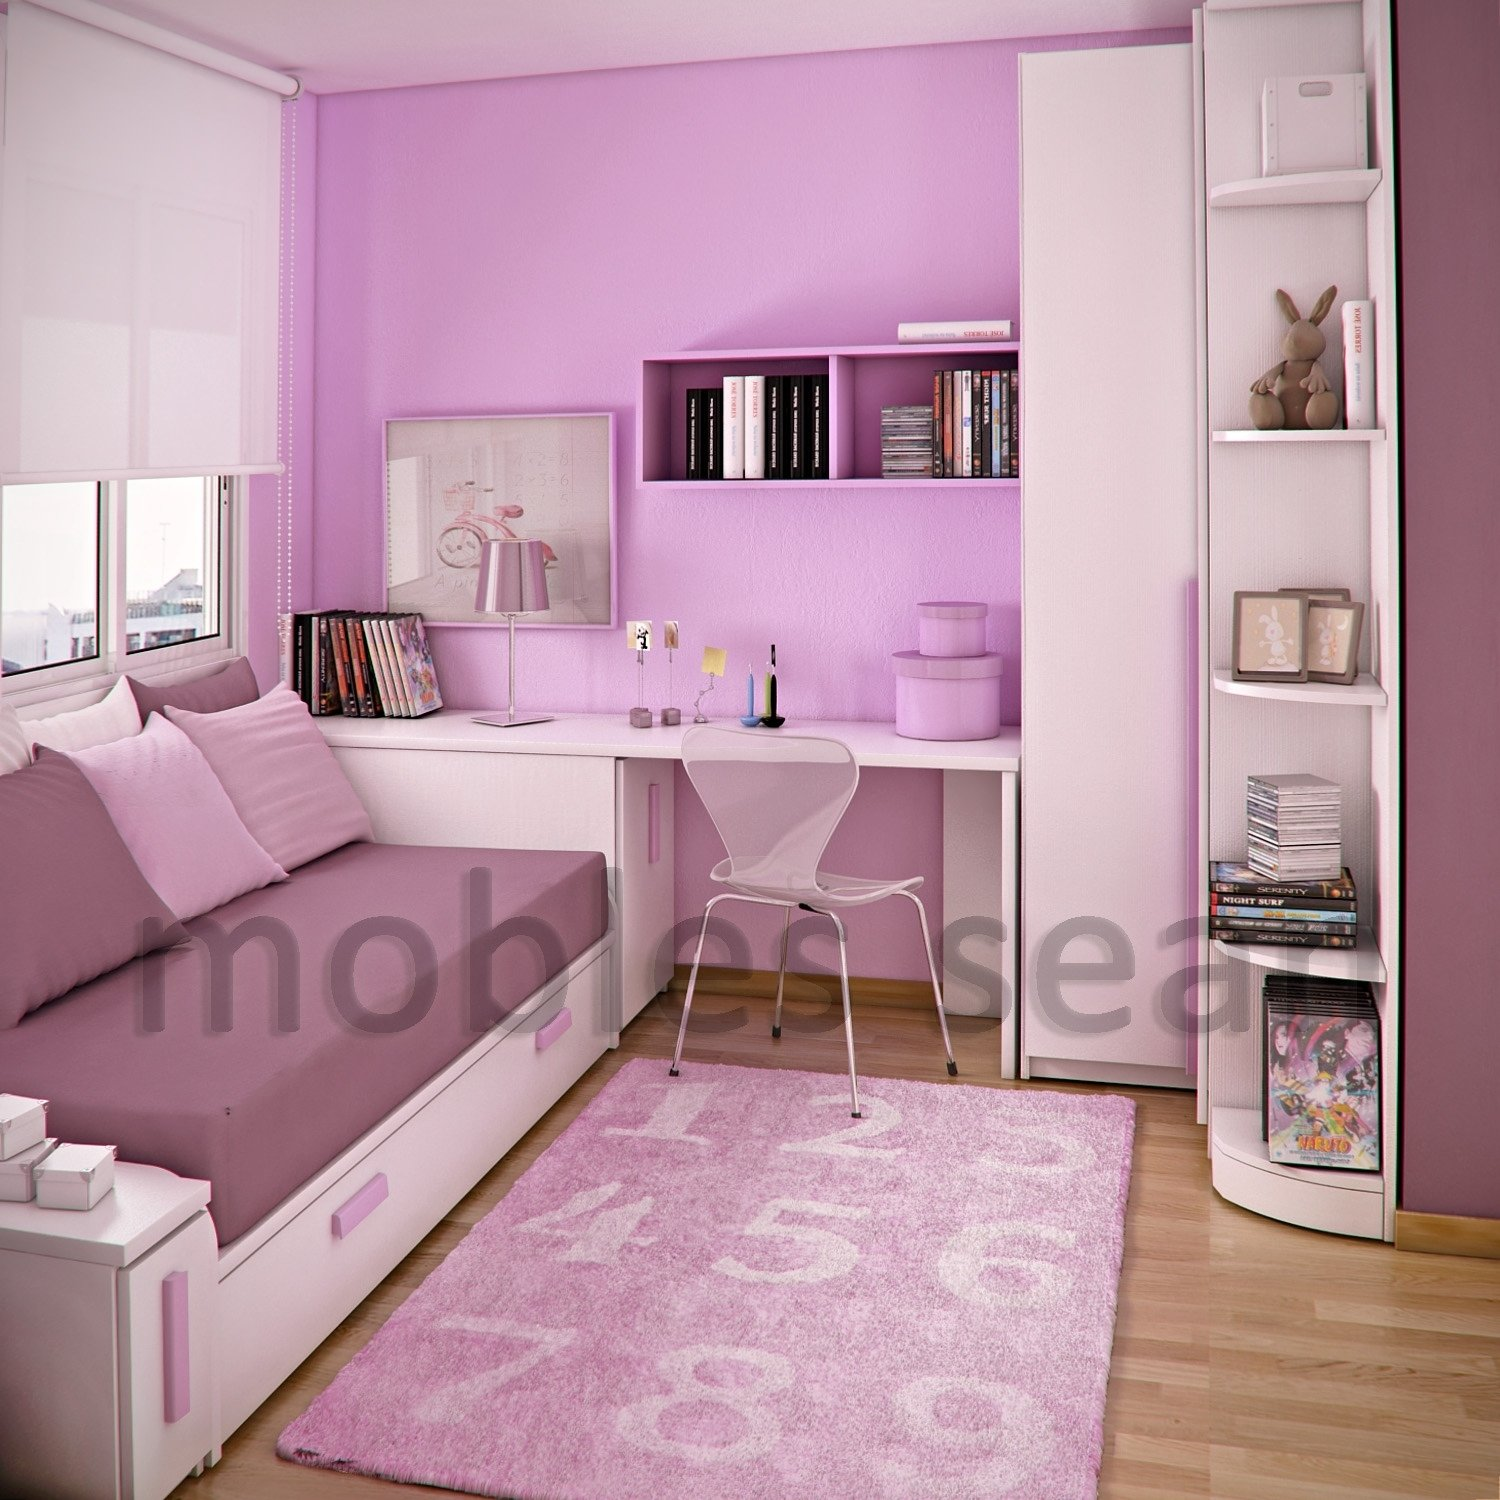 10 Unique Kids Bedroom Ideas For Small Rooms pink white small kids room decobizz 2020